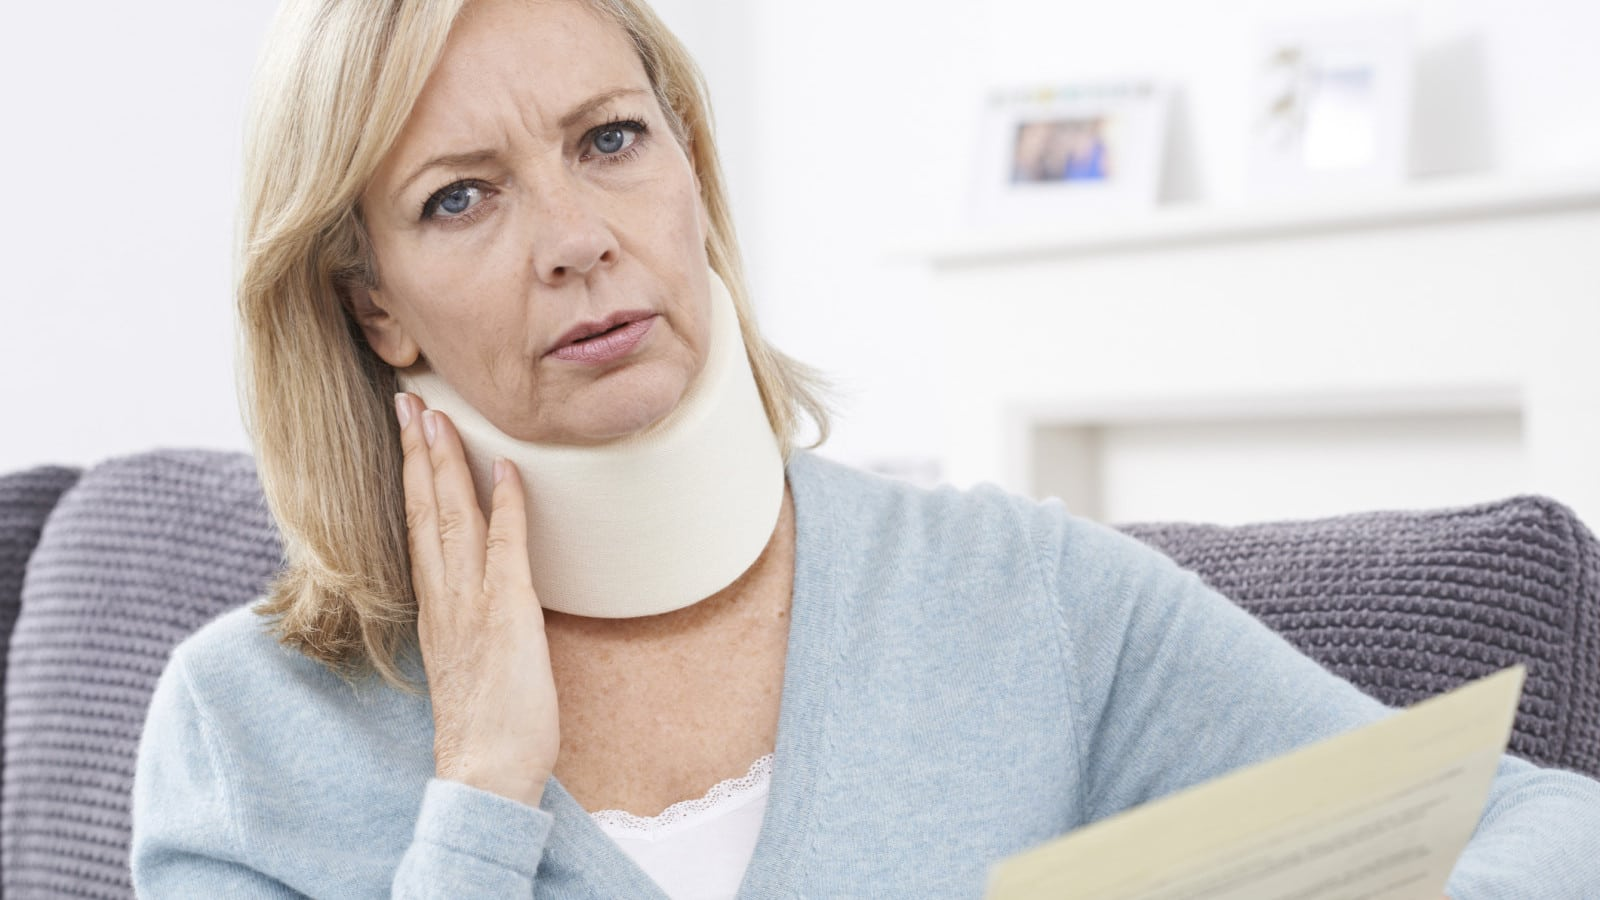 Mature Woman Wearing Neck Brace Stock Photo